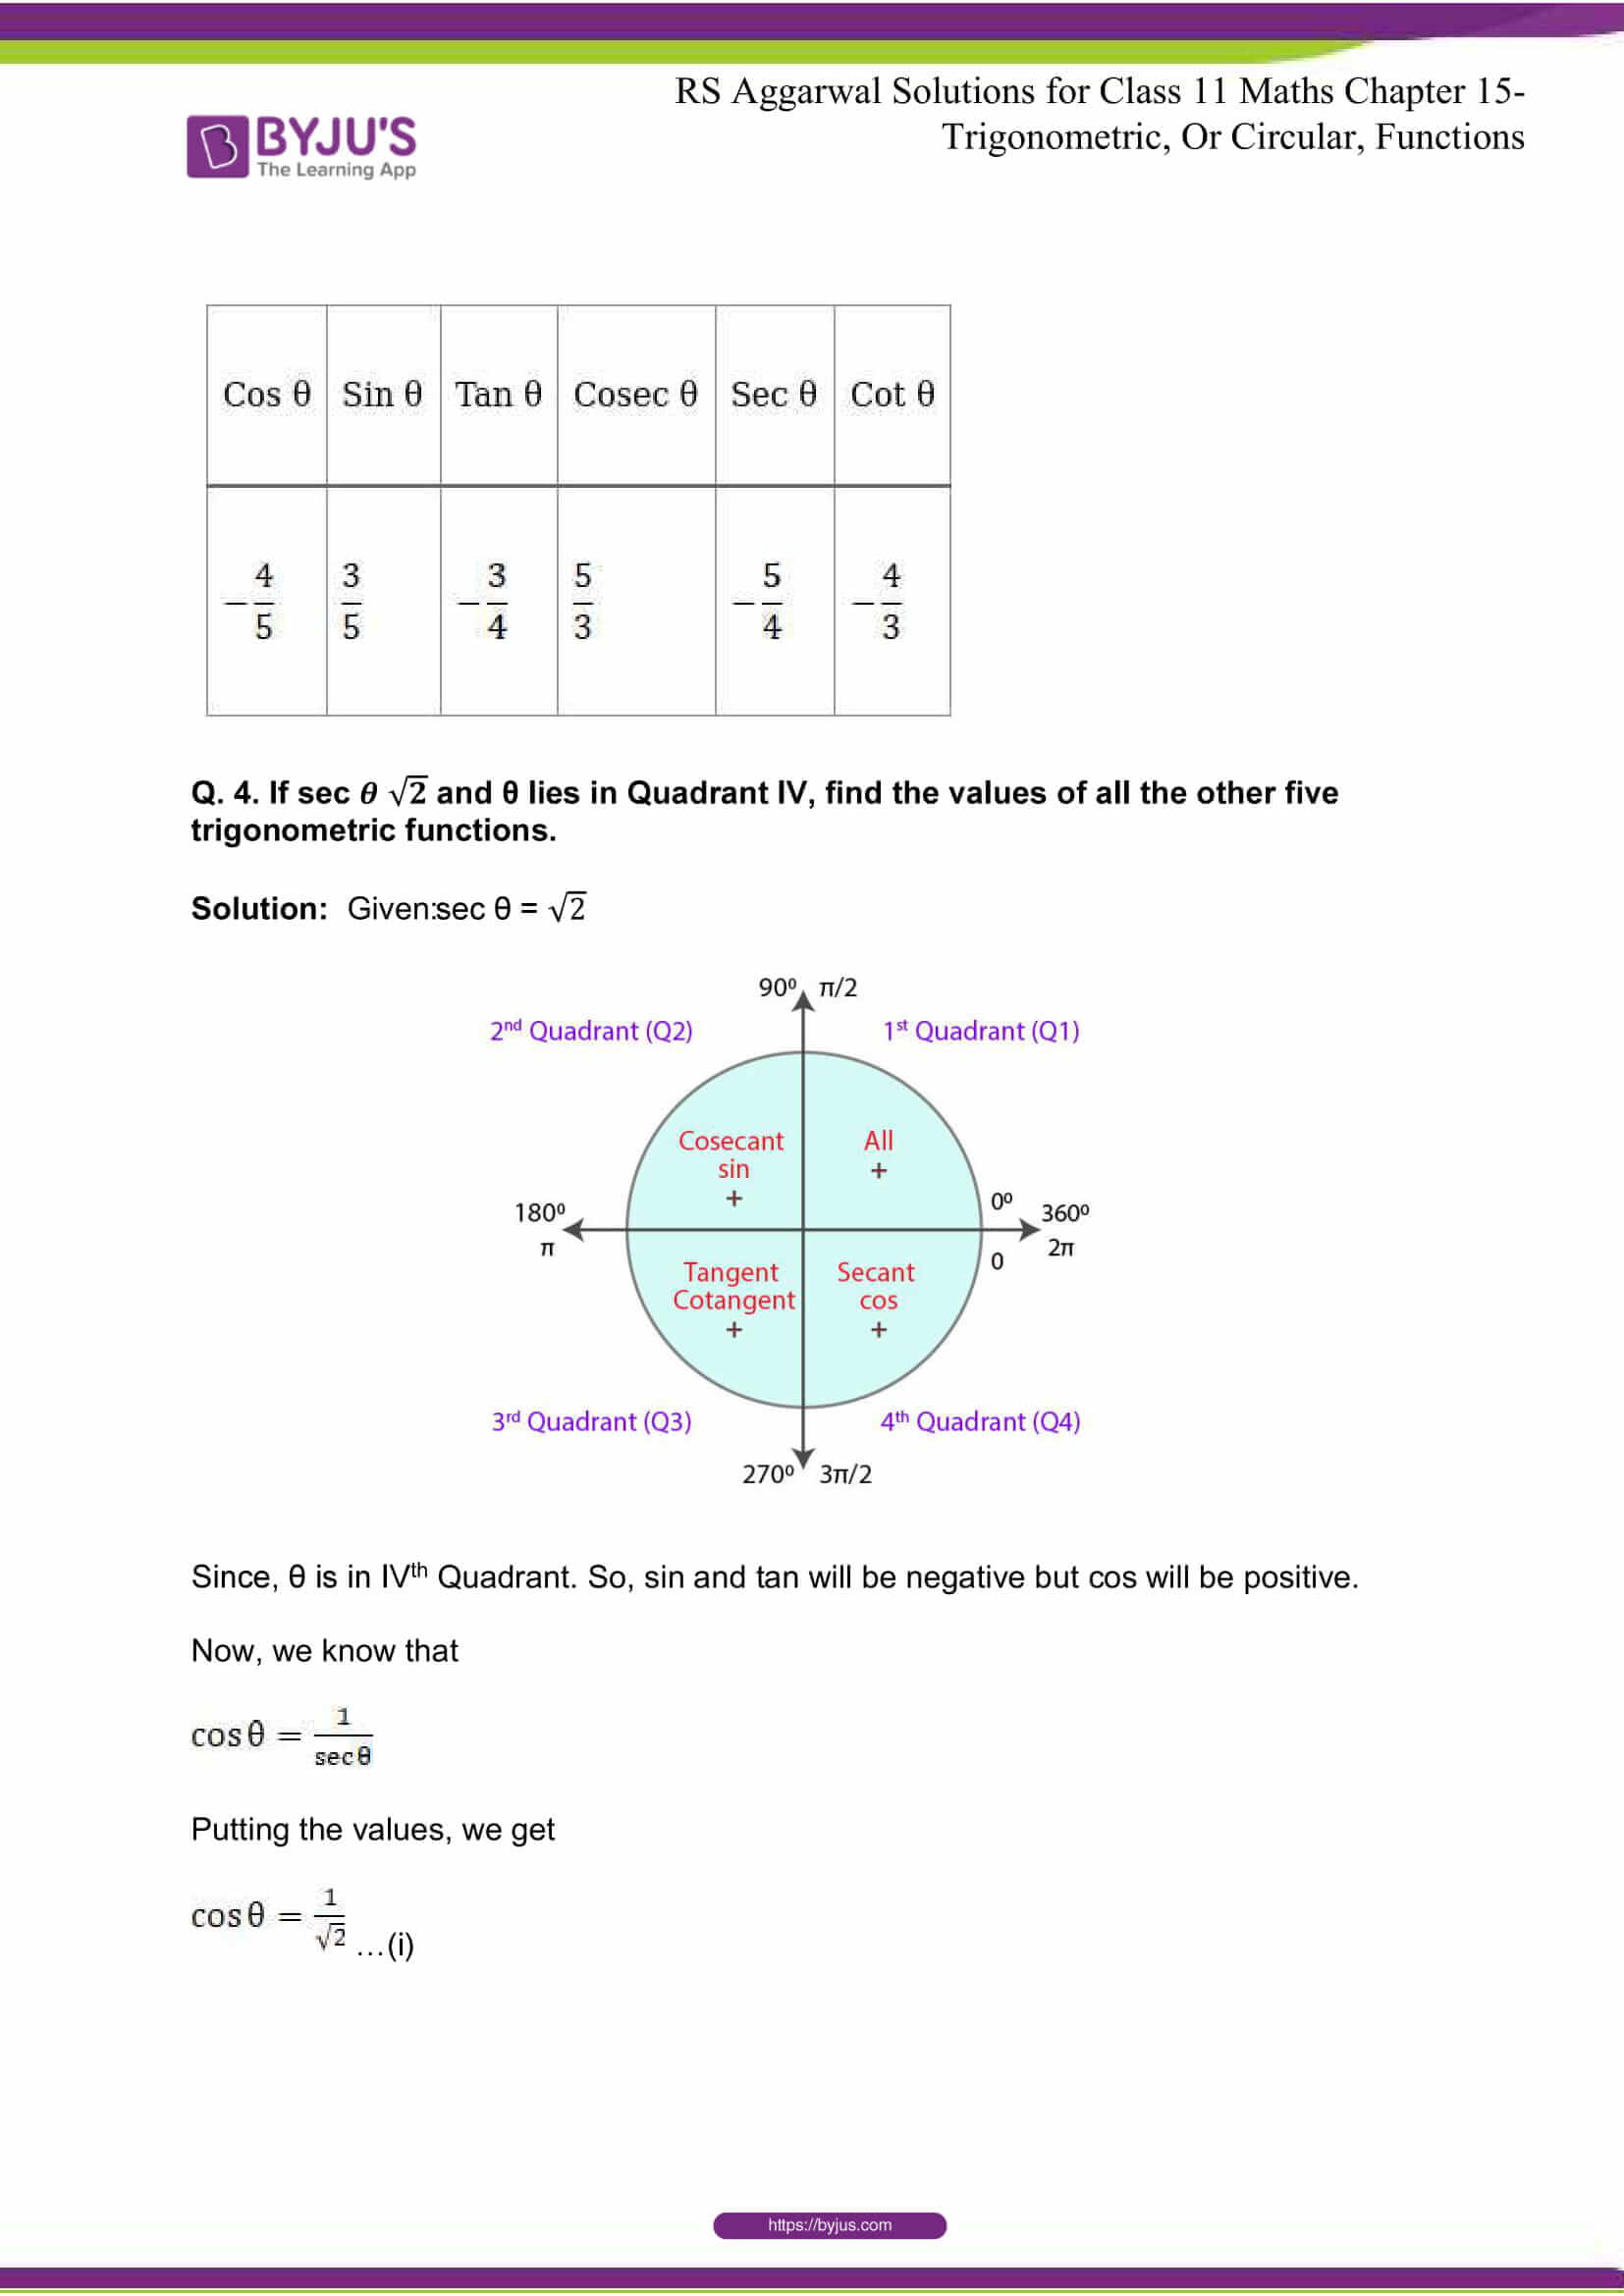 rsaggarwal solutions class 11 maths chapter 15 009